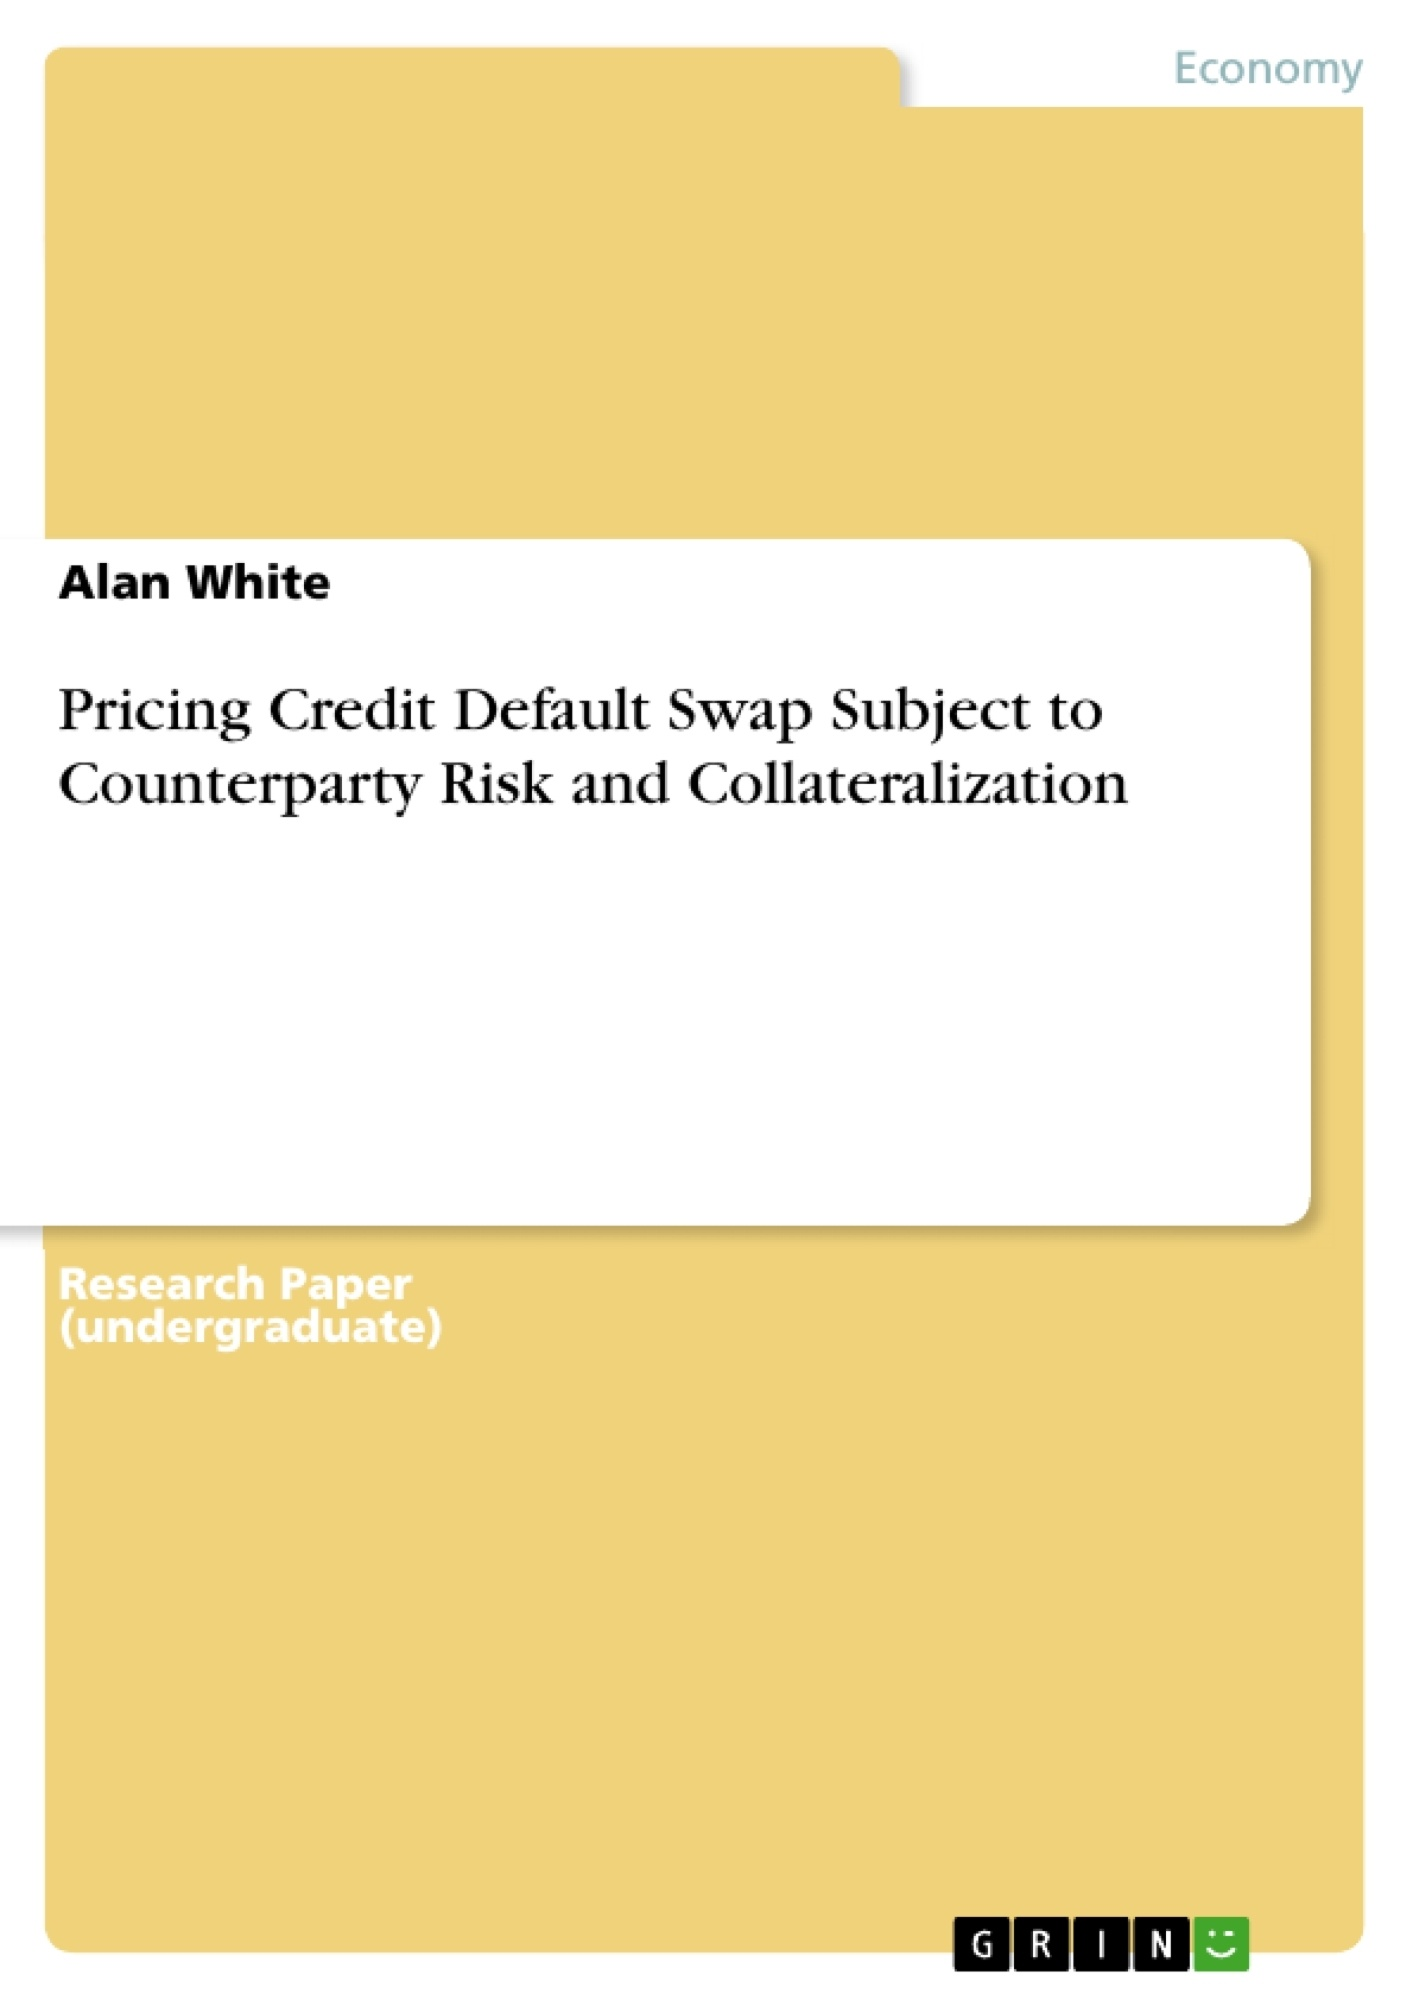 Title: Pricing Credit Default Swap Subject to Counterparty Risk and Collateralization